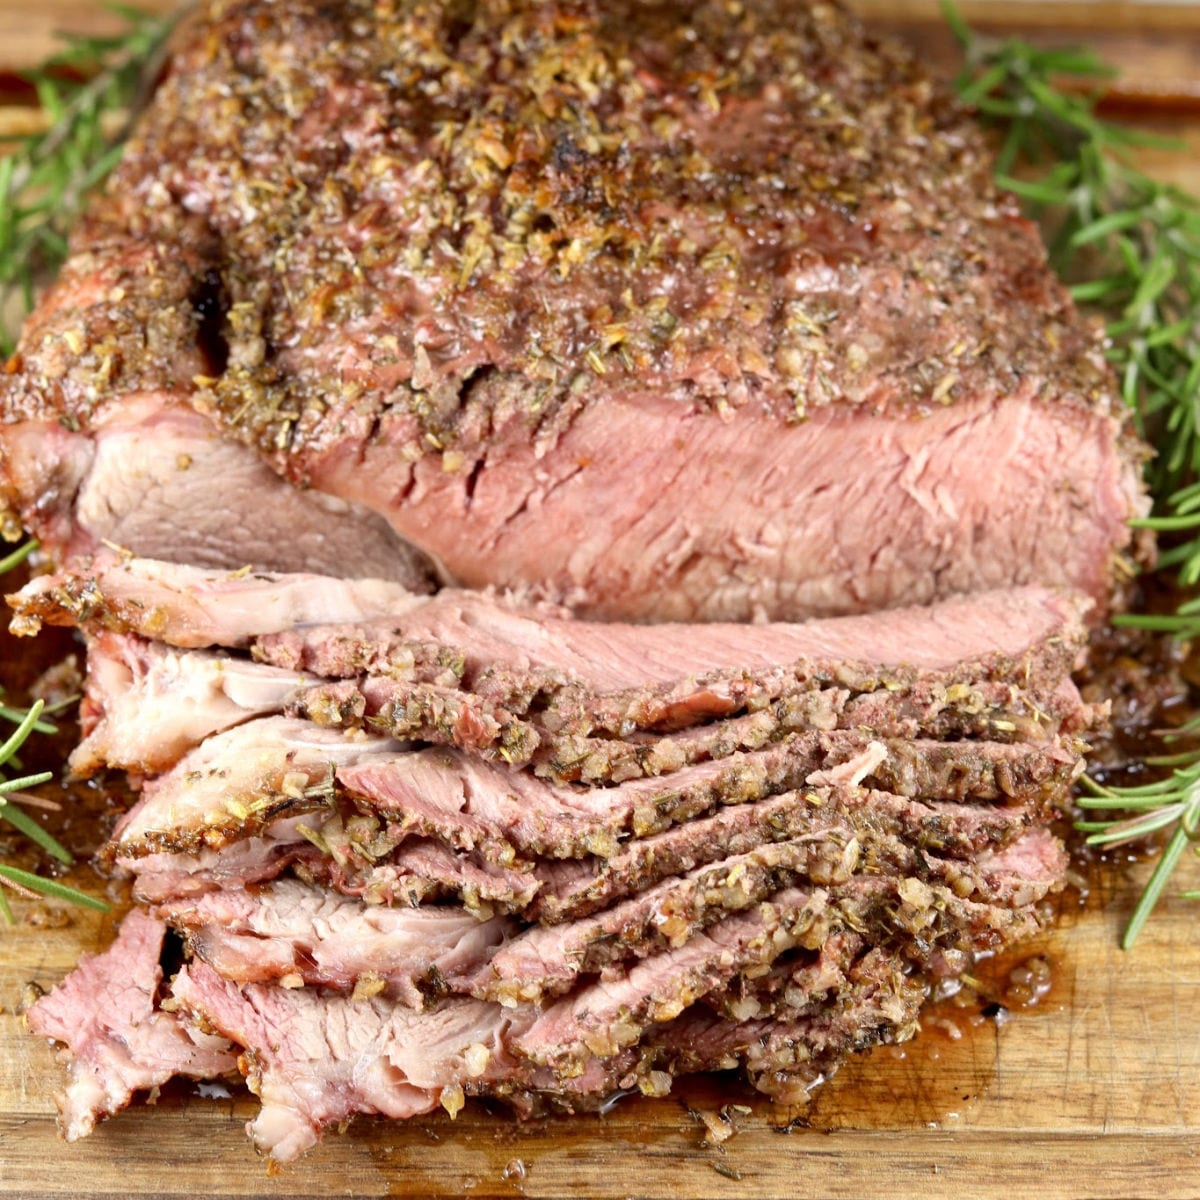 Herb Crusted Roast - sliced